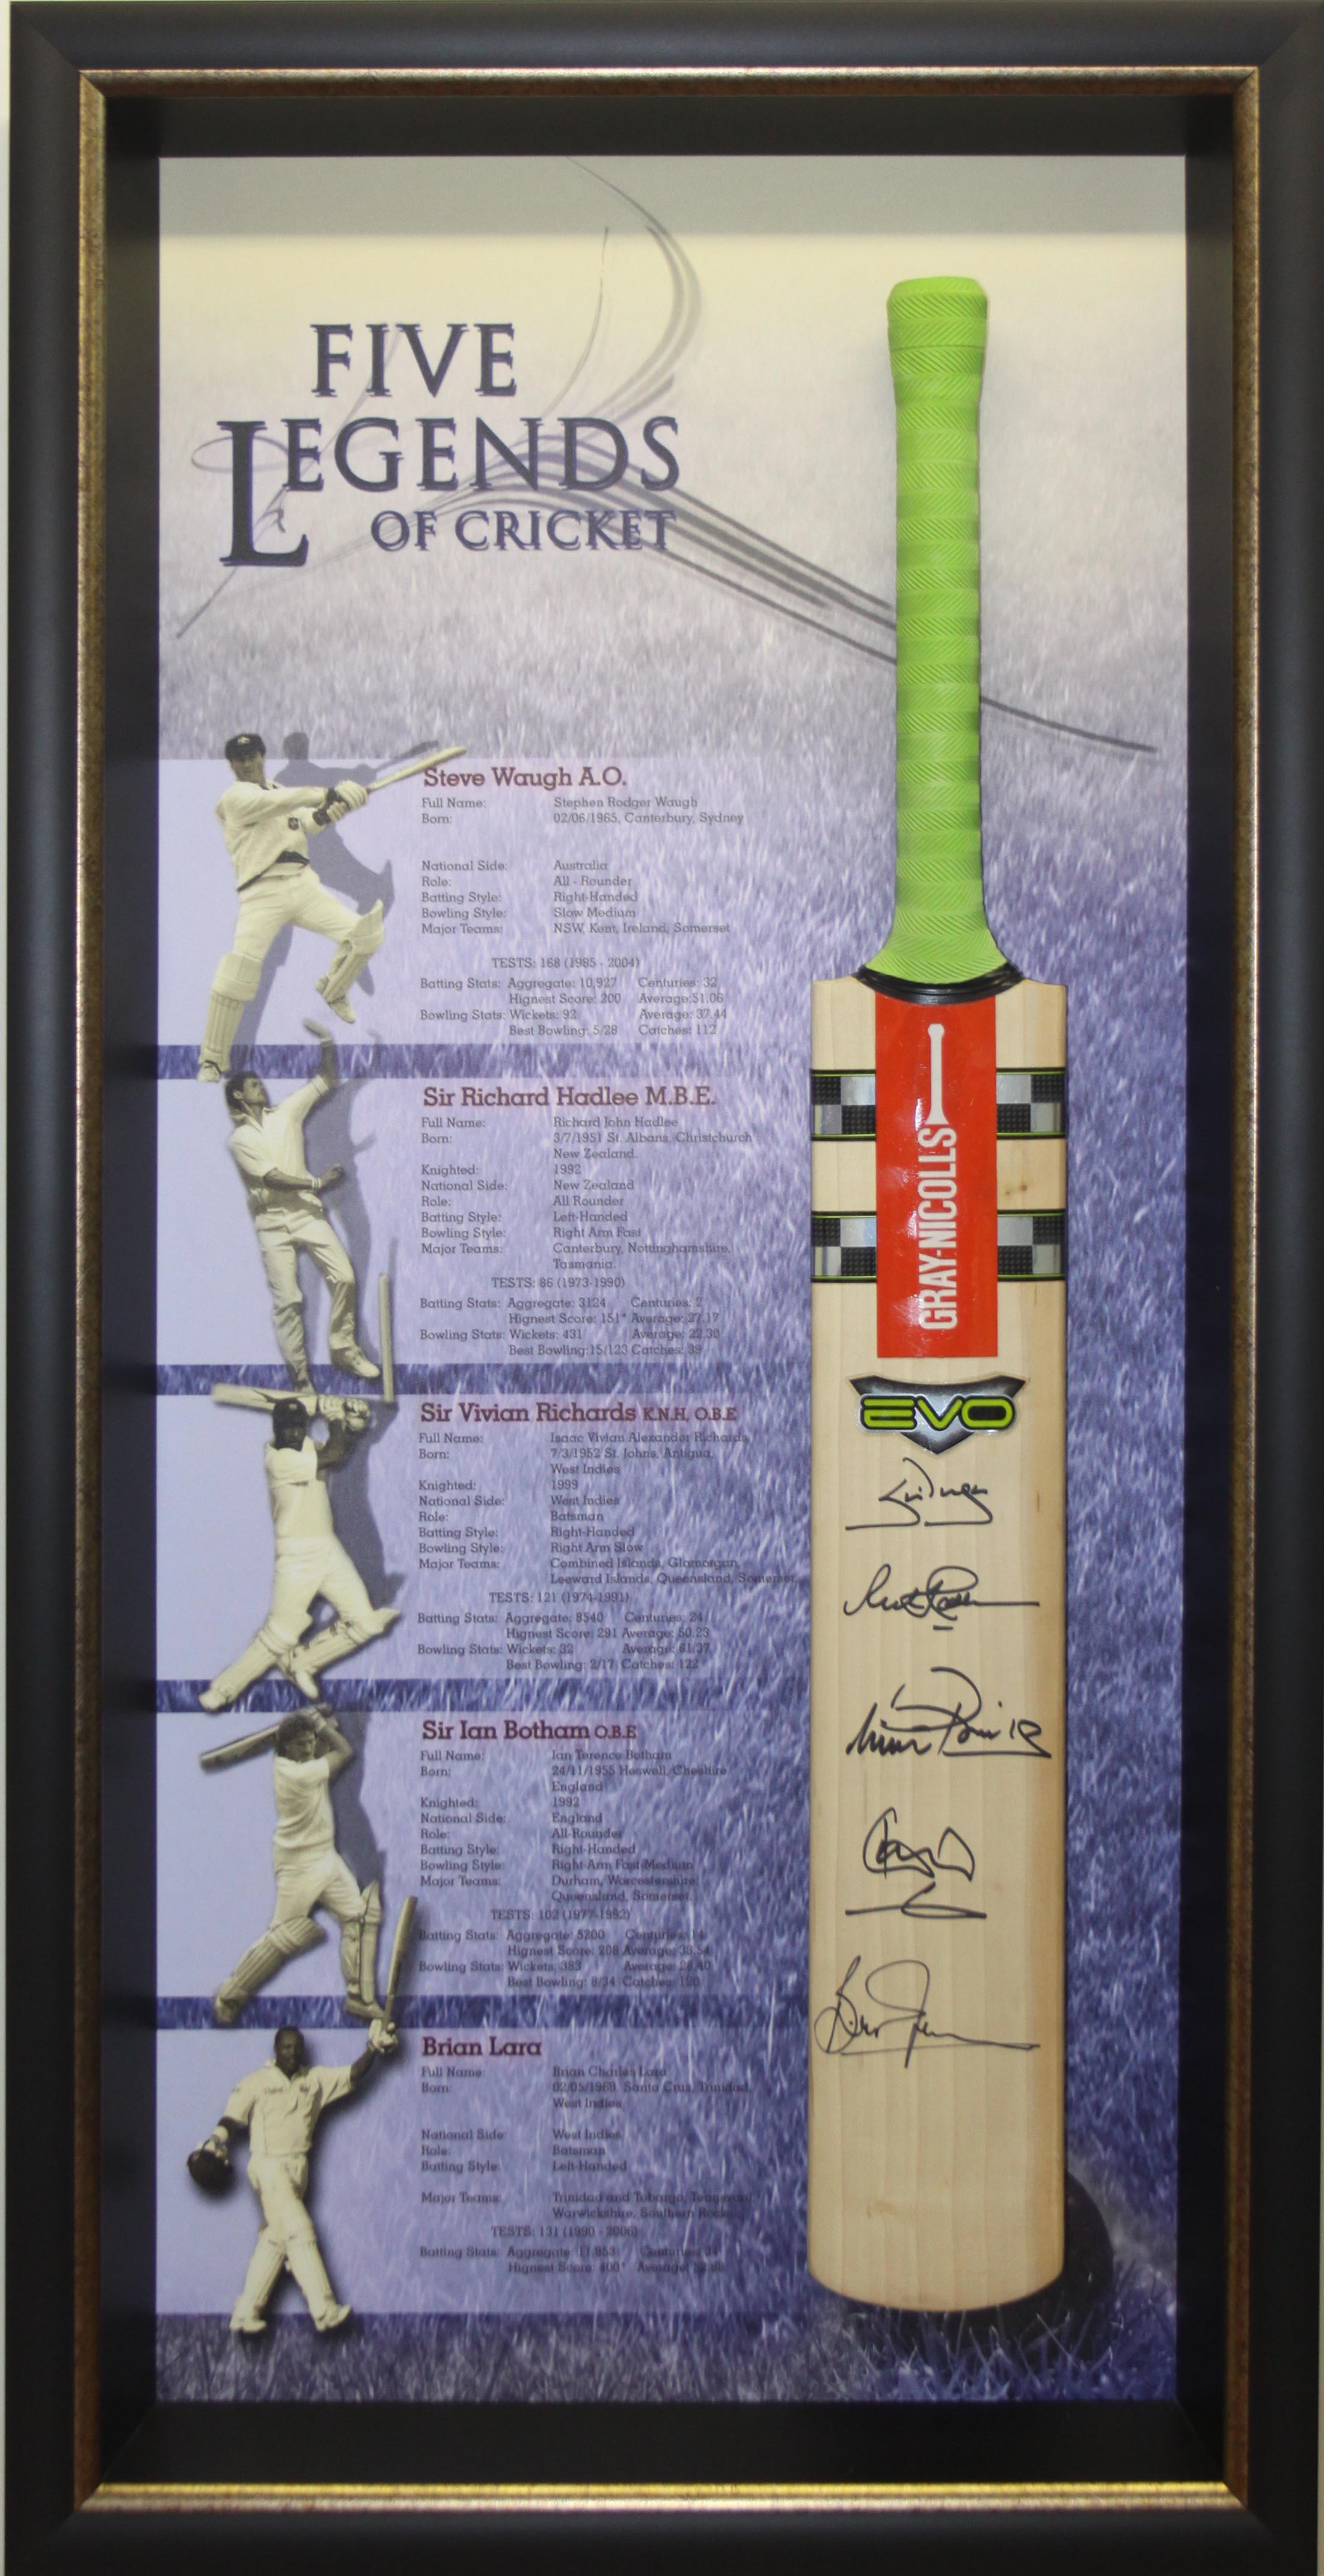 Five Legends of Cricket, Hand Signed Bat, Framed - Waugh, Lara, Richards, Hadlee & Botham - SPECIAL!